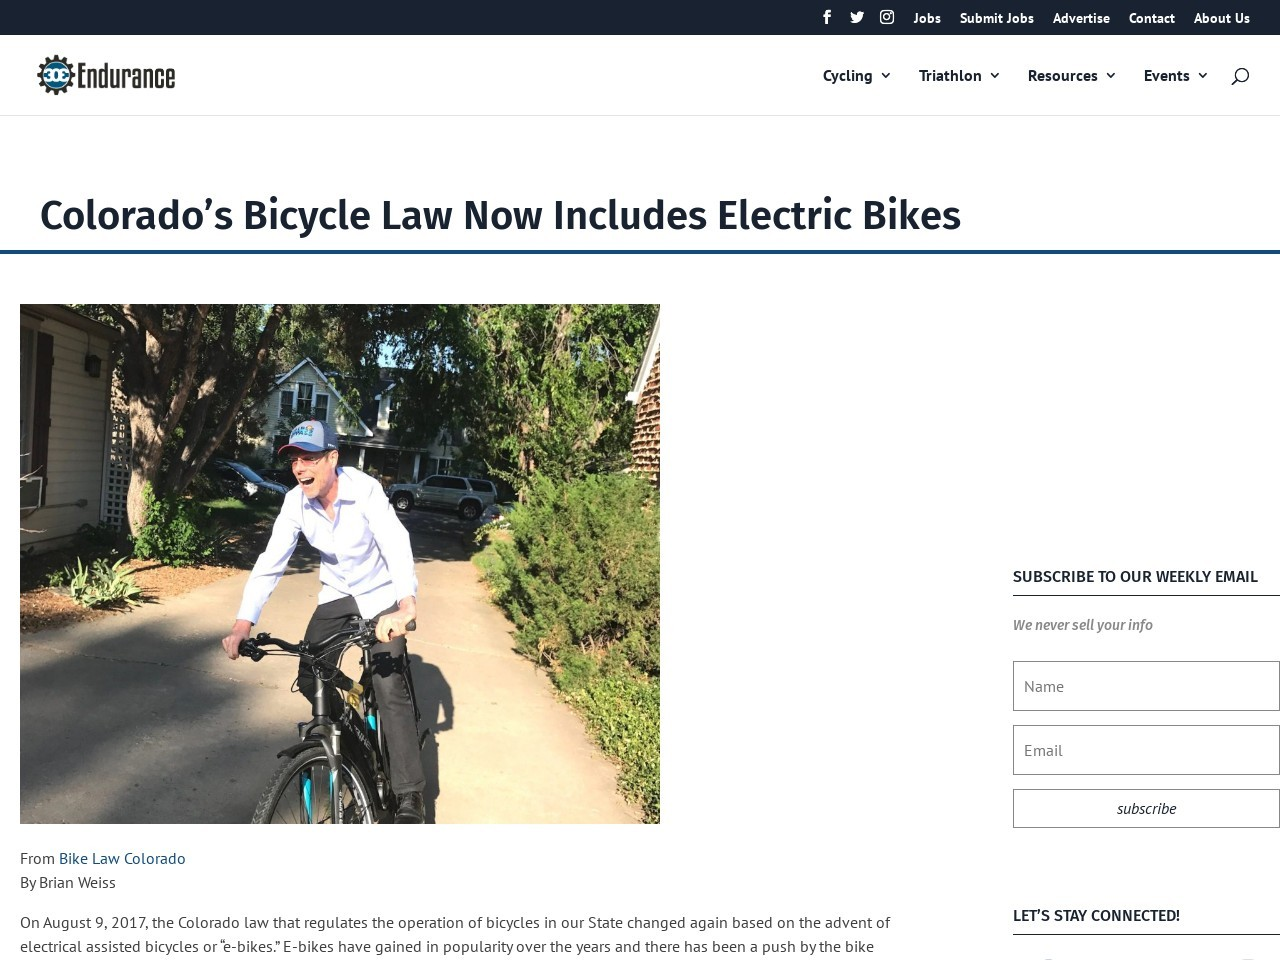 Colorado's Bicycle Law Now Includes Electric Bikes